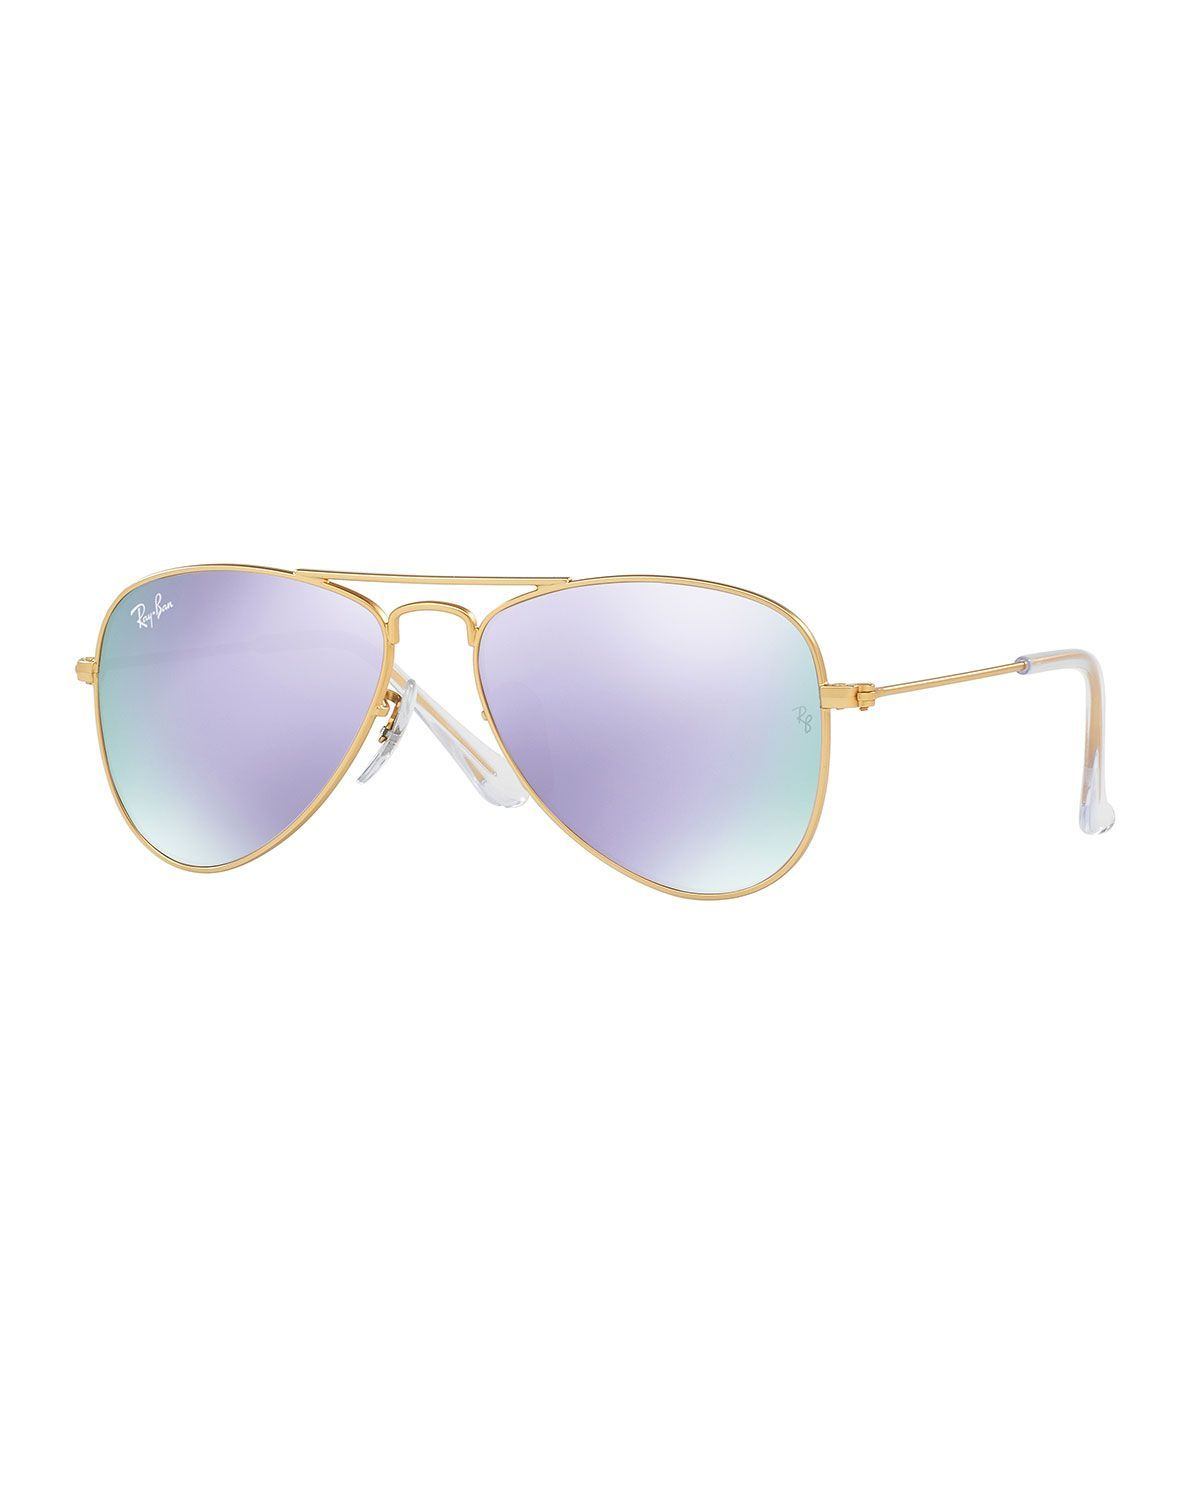 Iridescent Aviator Sunglasses, Gold/Lilac, Gold/Liliac - Ray-Ban Junior